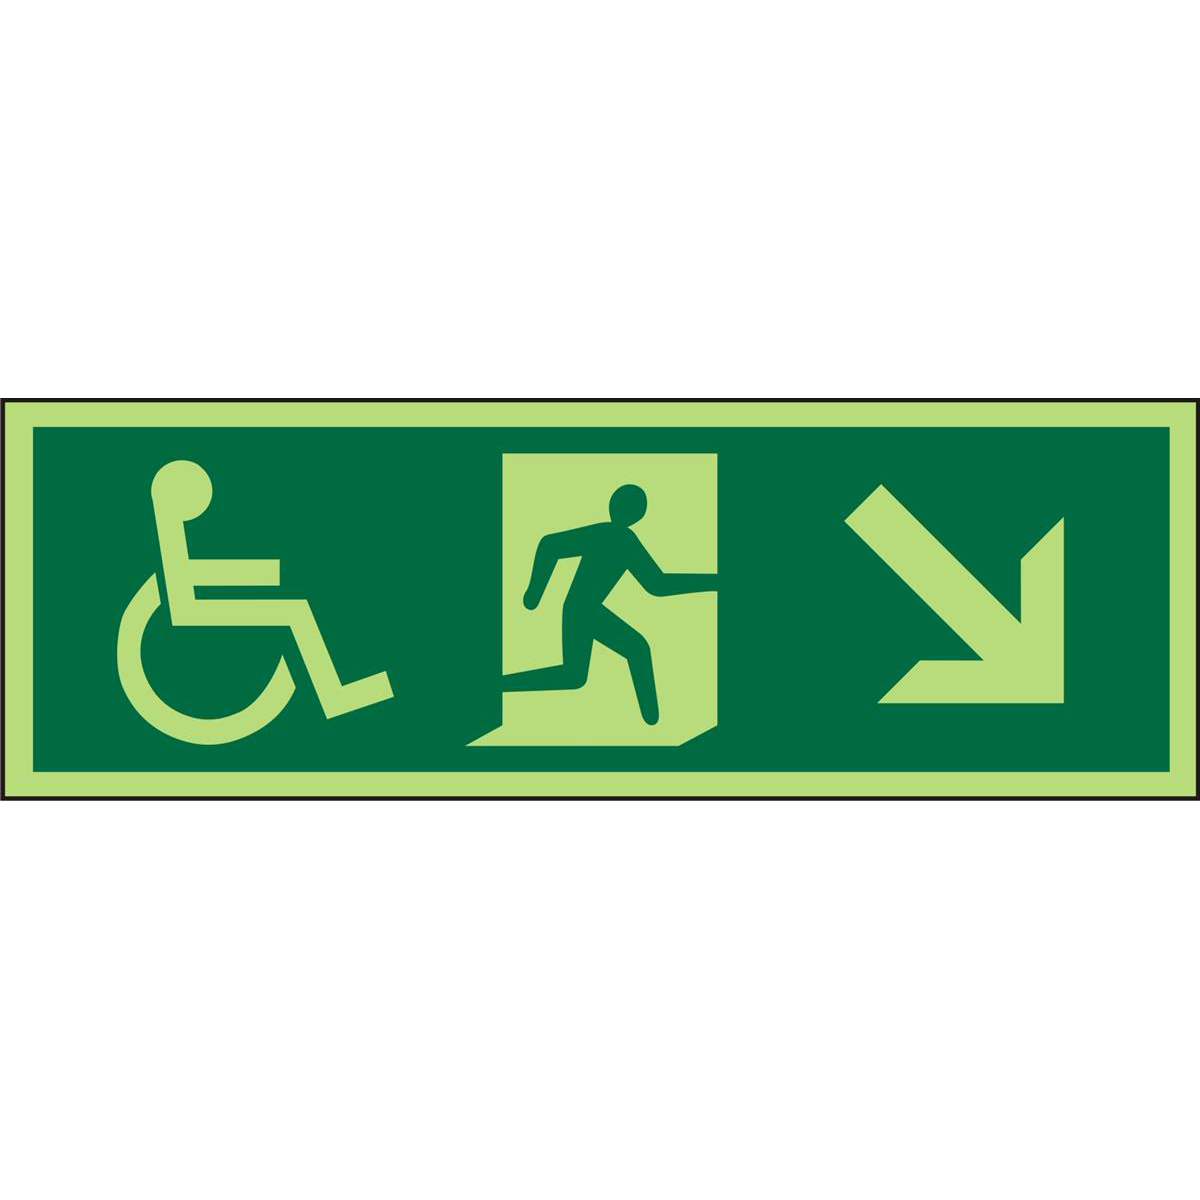 Photol ExitSign 2mm Wheelchair Picto/Manrun rightArrow downright Ref PDSP061450x150 *Upto 10Day Leadtime*